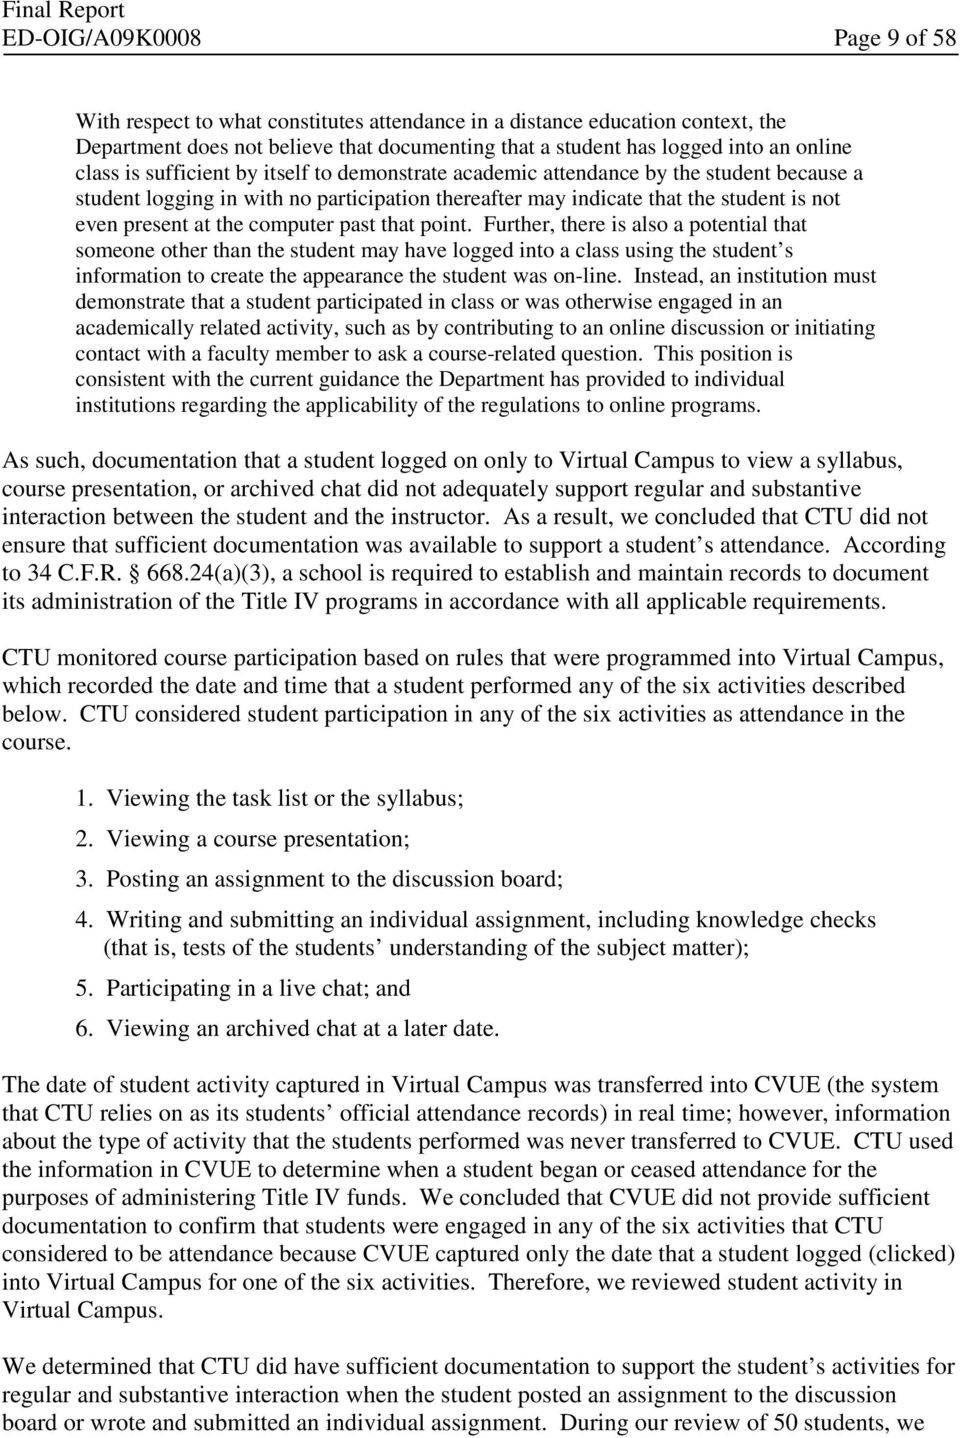 Colorado Technical University s Administration of Title IV, Higher